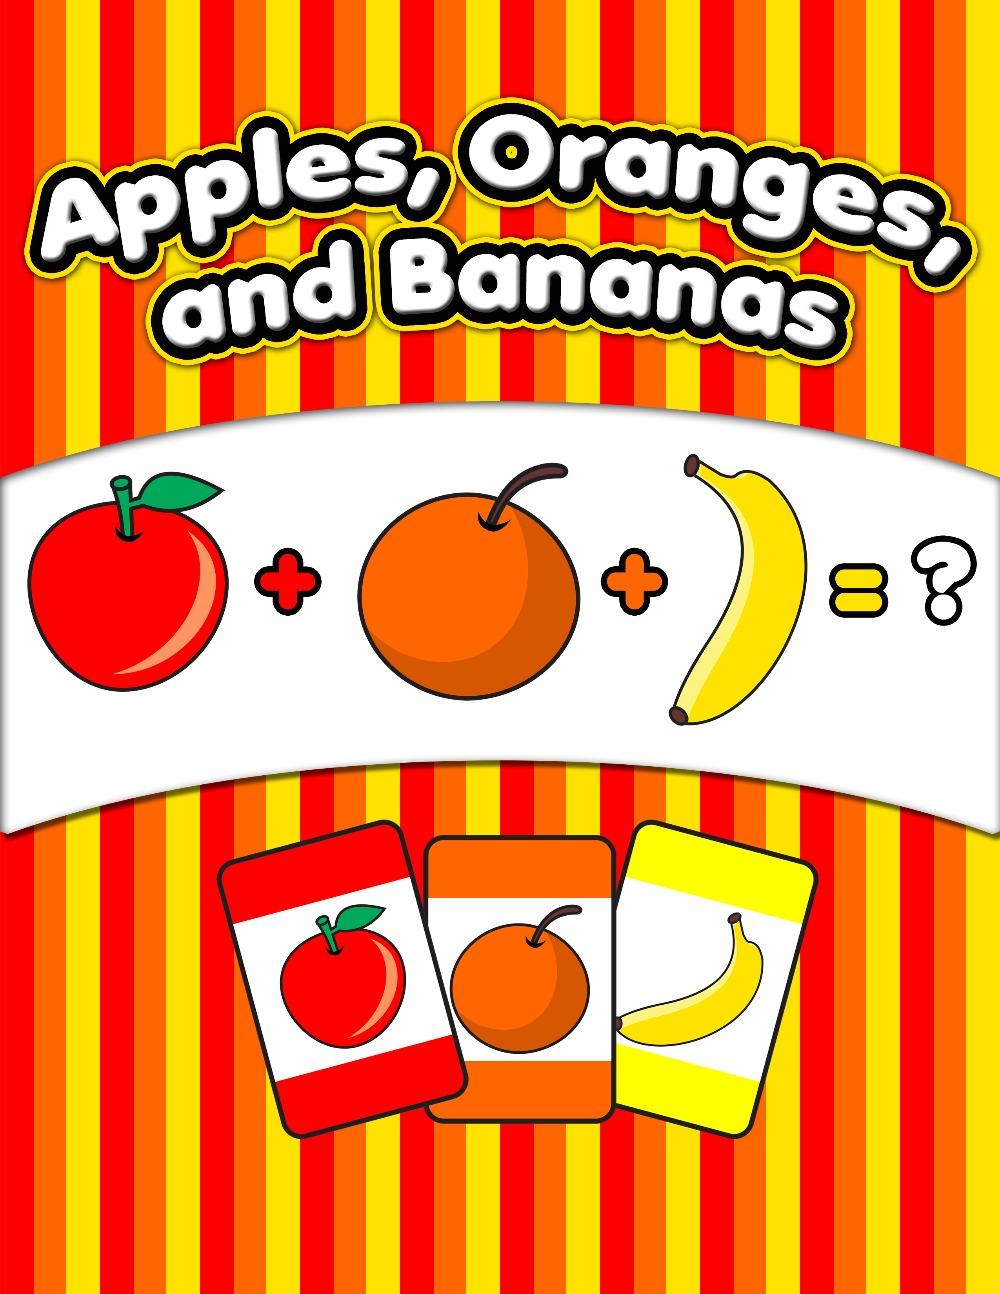 ​Apples, Oranges, and Bananas